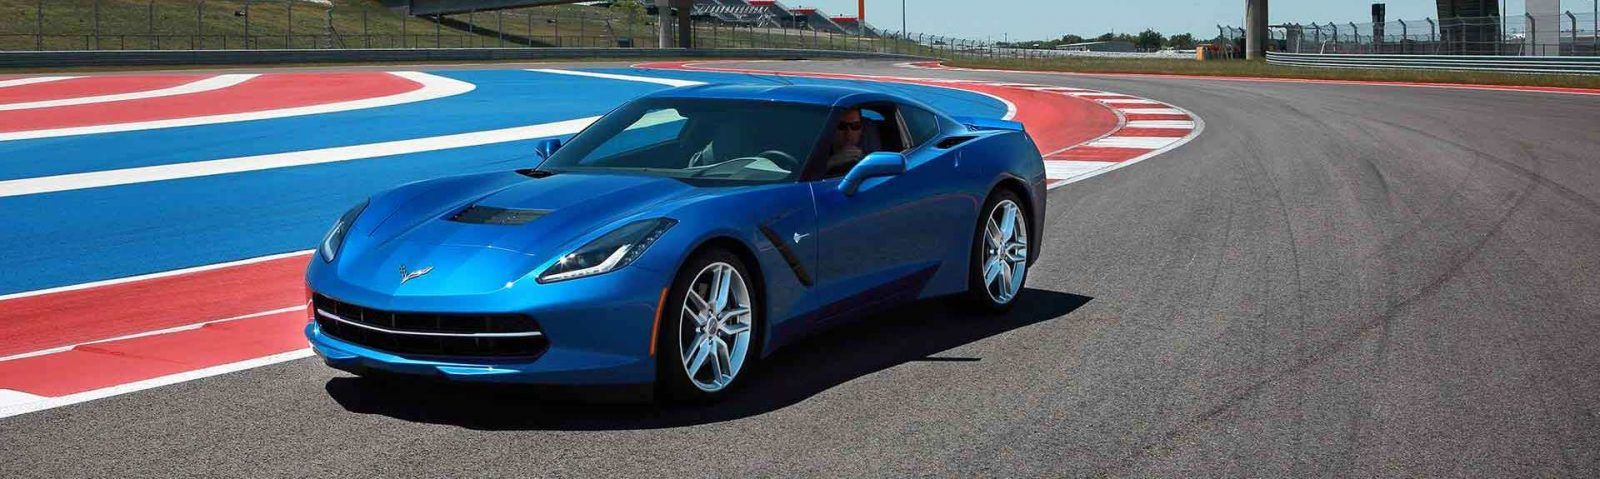 2014 Corvette Stingray Colors Gallery3